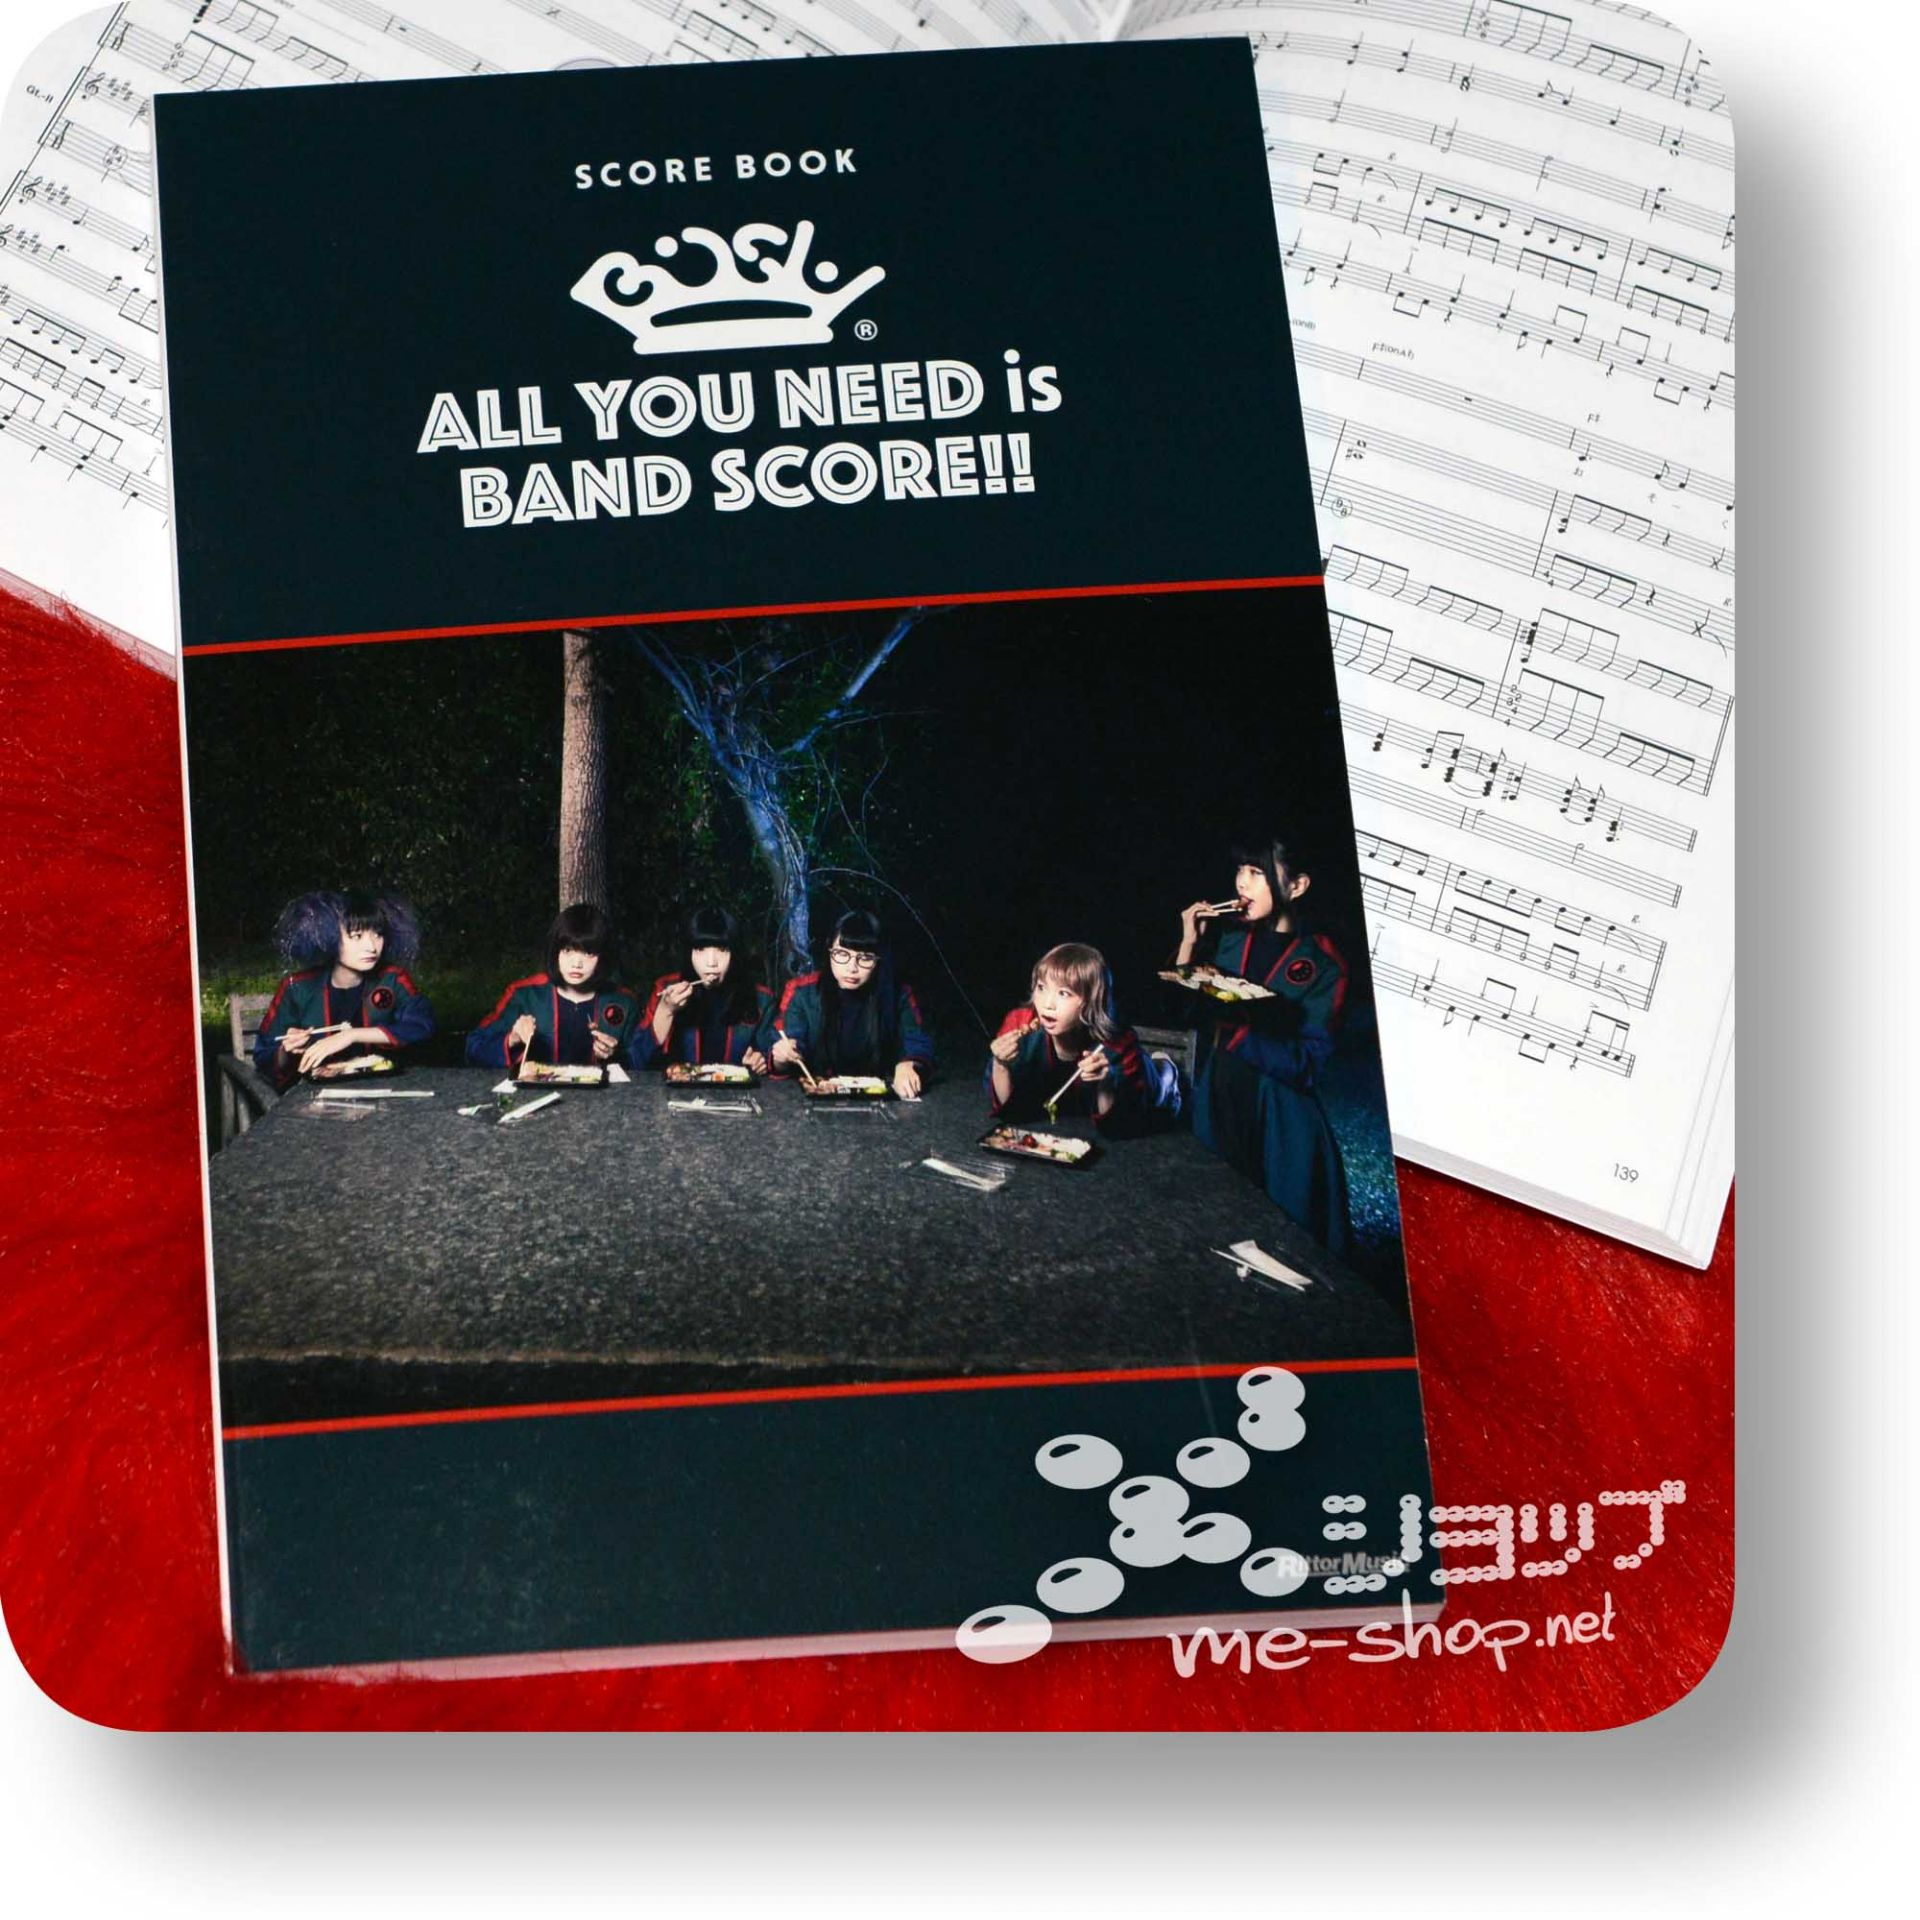 bish all you need is band score